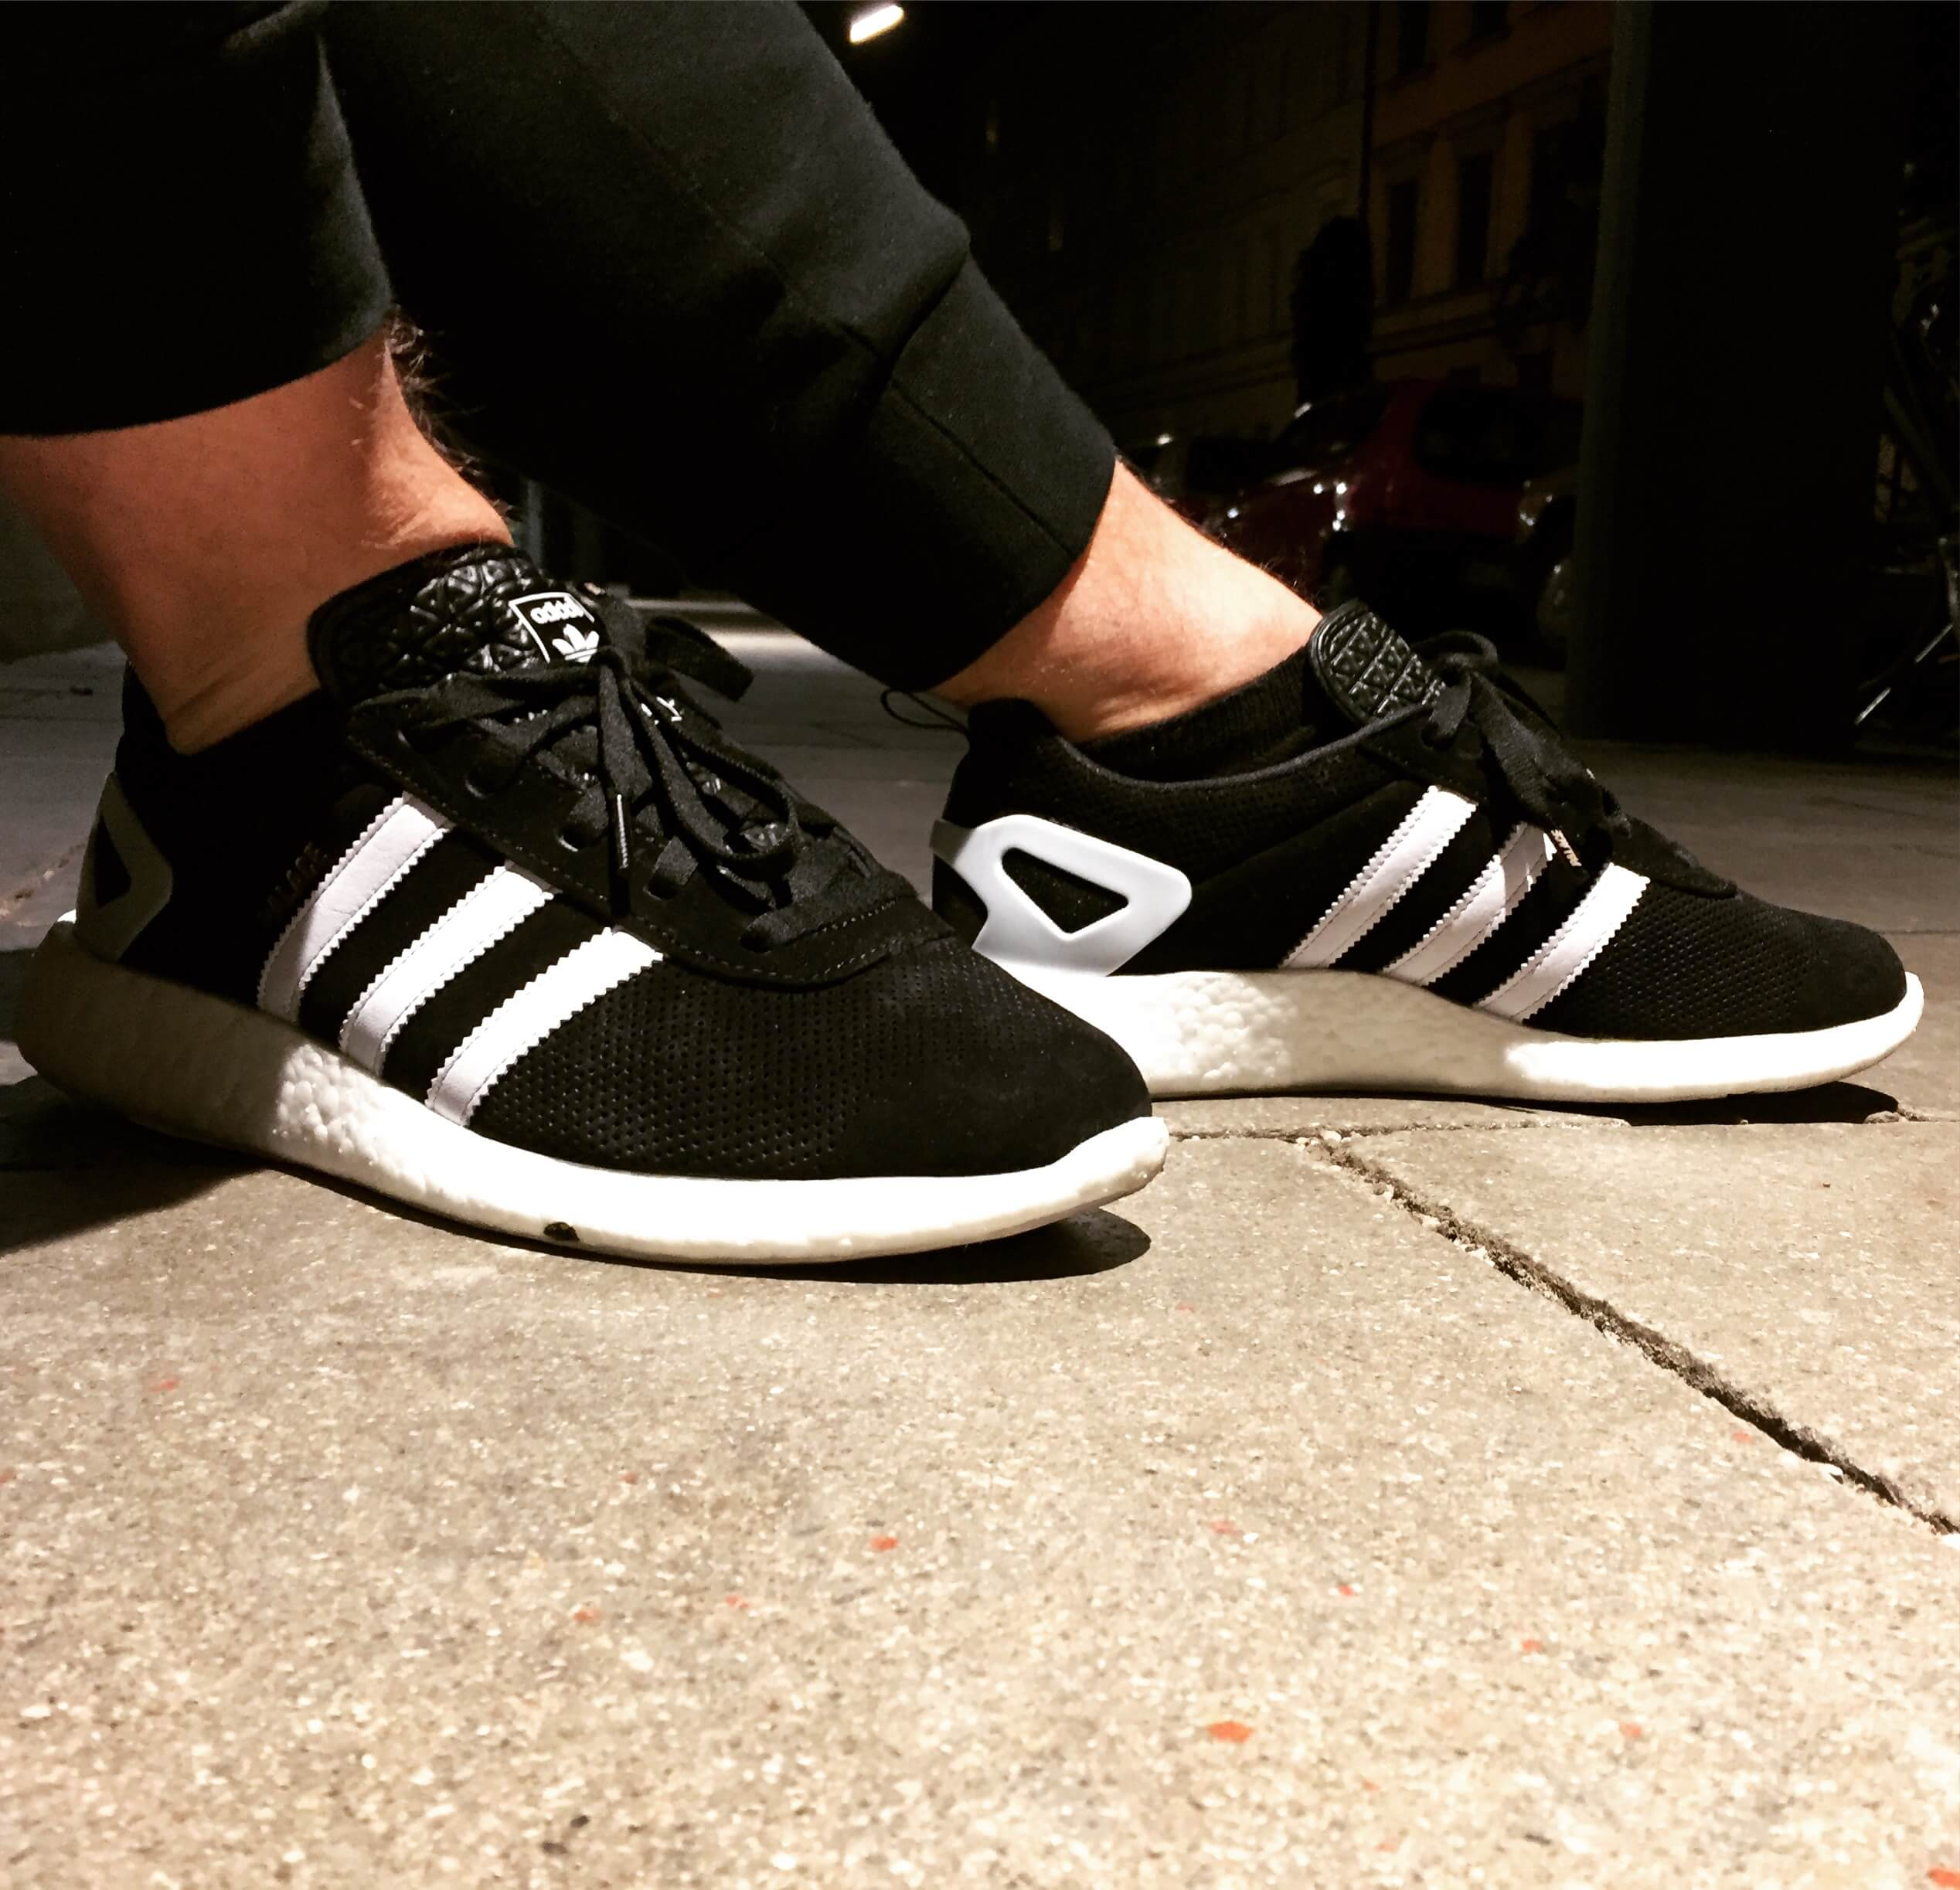 Adidas-Palace-Pro-Boost-Side-View-Benstah-Onfeet